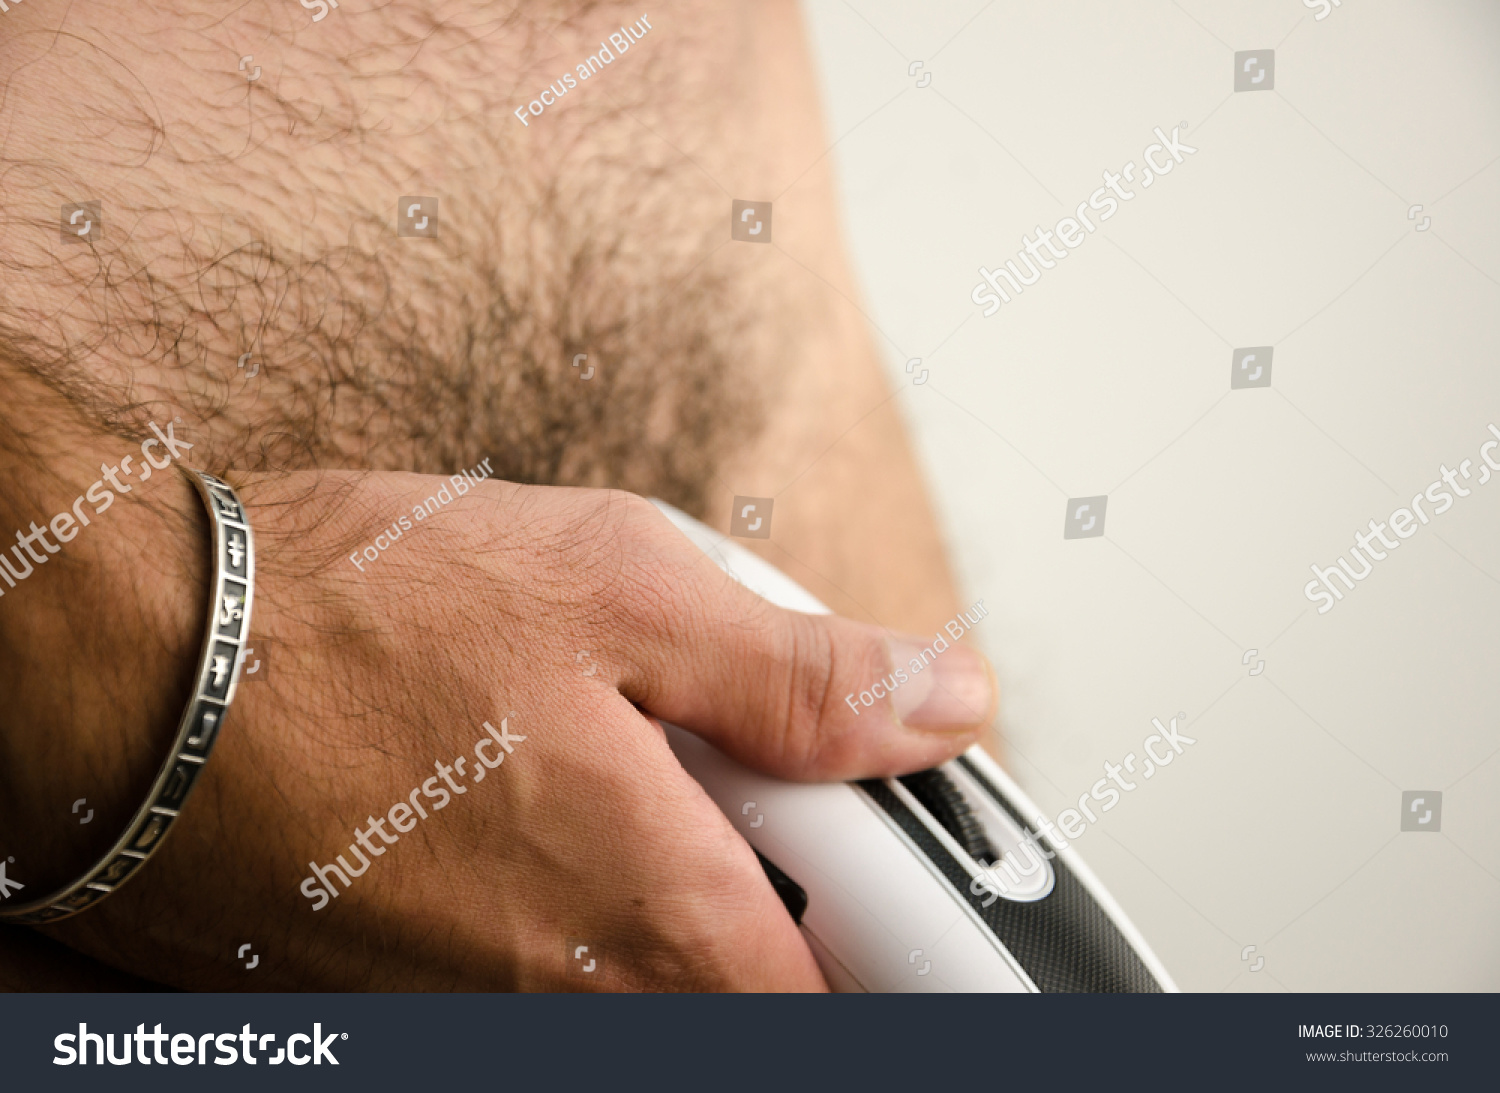 ... Haircut Pubic Hair With A Clipper Stock Photo 326260010 : Shutterstock: www.shutterstock.com/pic-326260010/stock-photo-man-haircut-pubic...